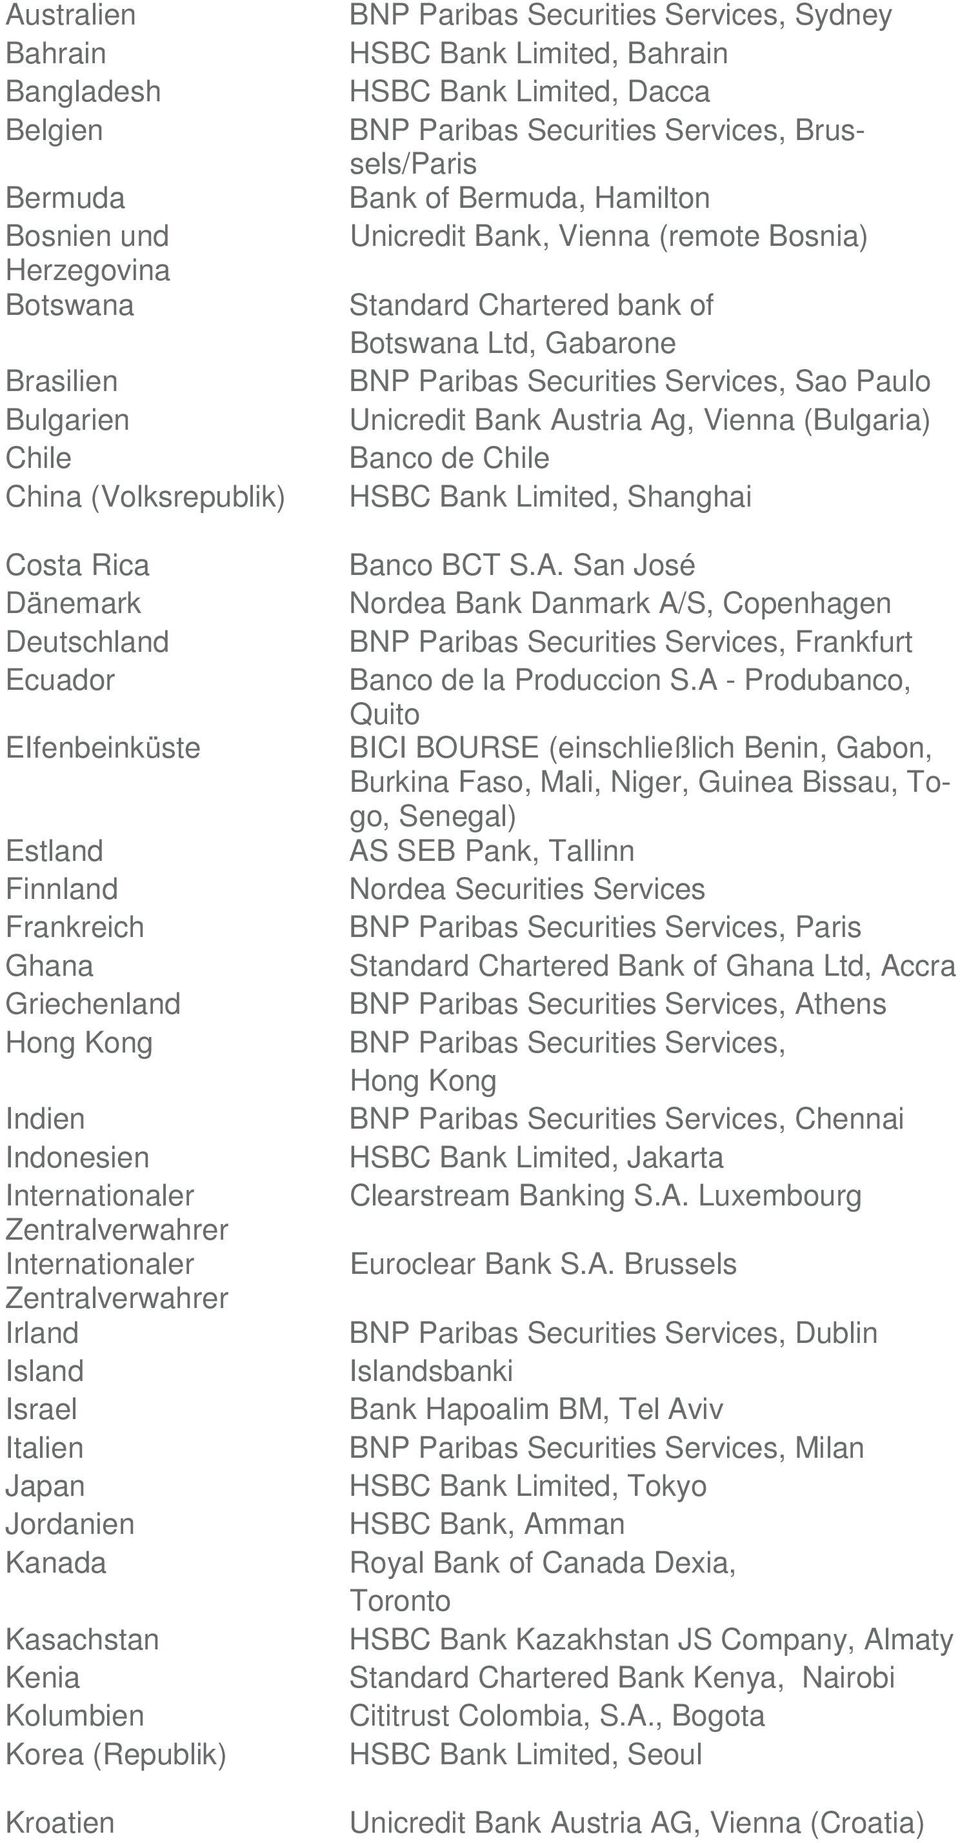 Kolumbien Korea (Republik) Kroatien BNP Paribas Securities Services, Sydney HSBC Bank Limited, Bahrain HSBC Bank Limited, Dacca BNP Paribas Securities Services, Brussels/Paris Bank of Bermuda,